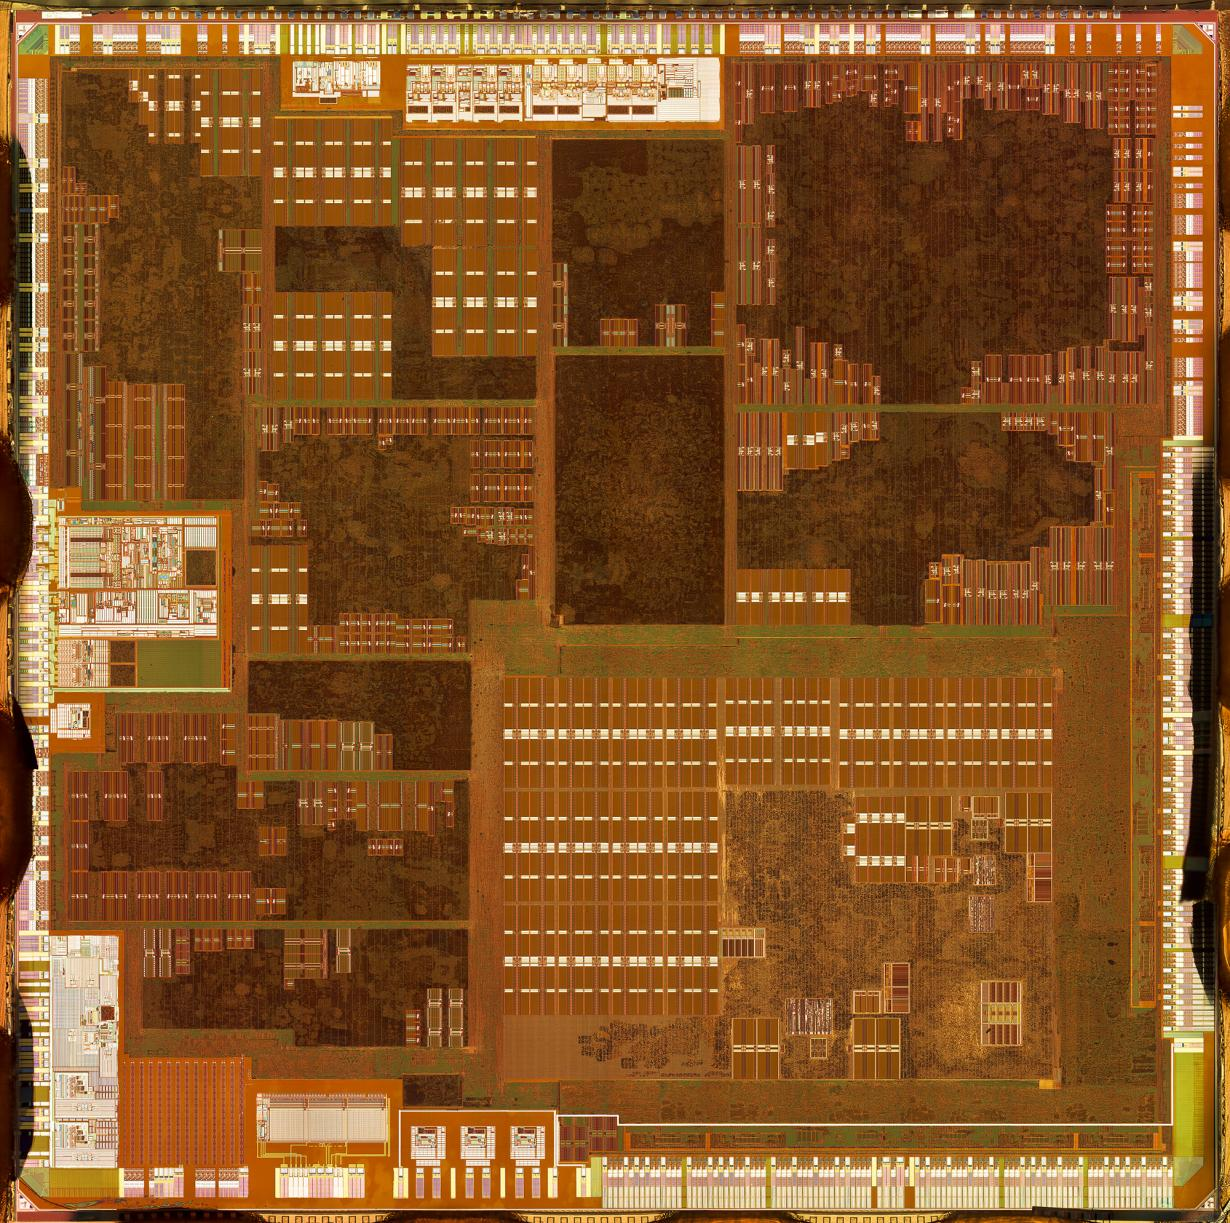 Microscopic composite image of an Apple A4 computer microprocessor.